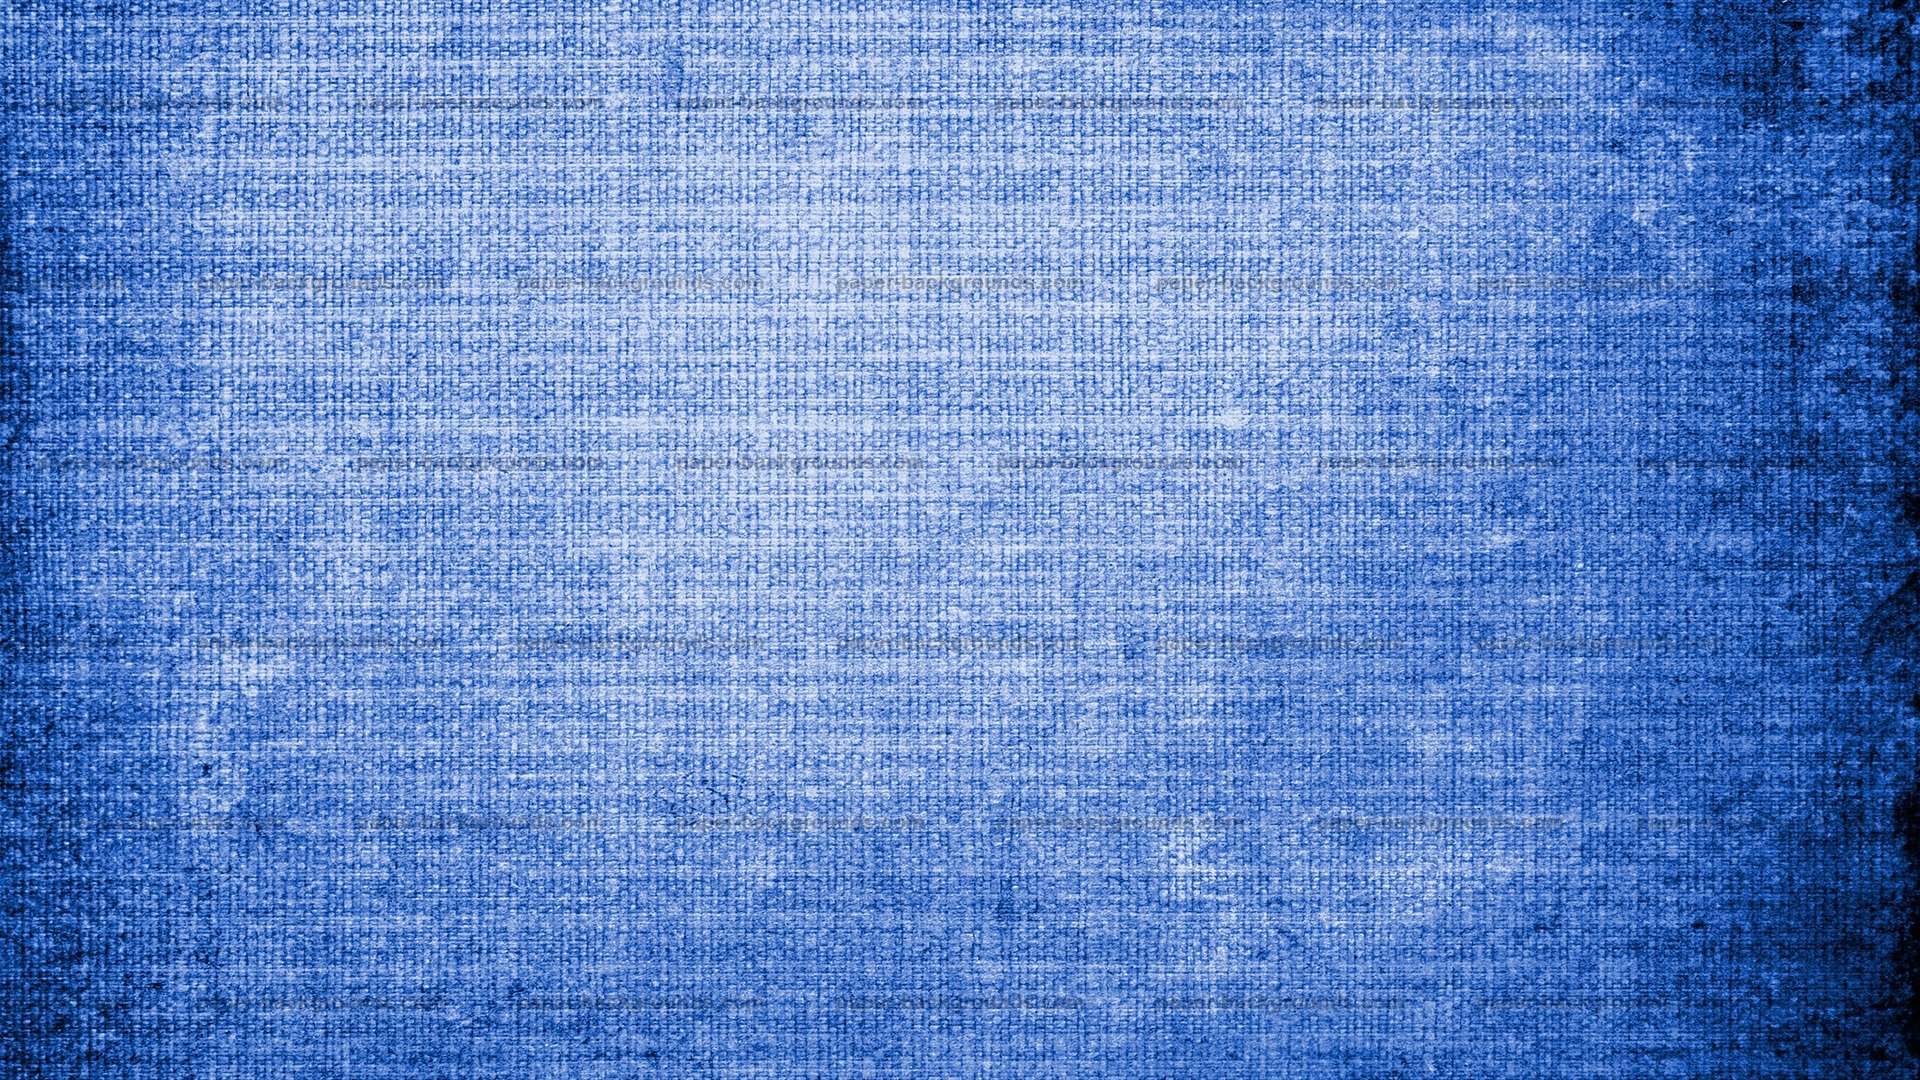 Pin Blue Texture Vintage Series Desktop Wallpaper 1366x768 on 1920x1080